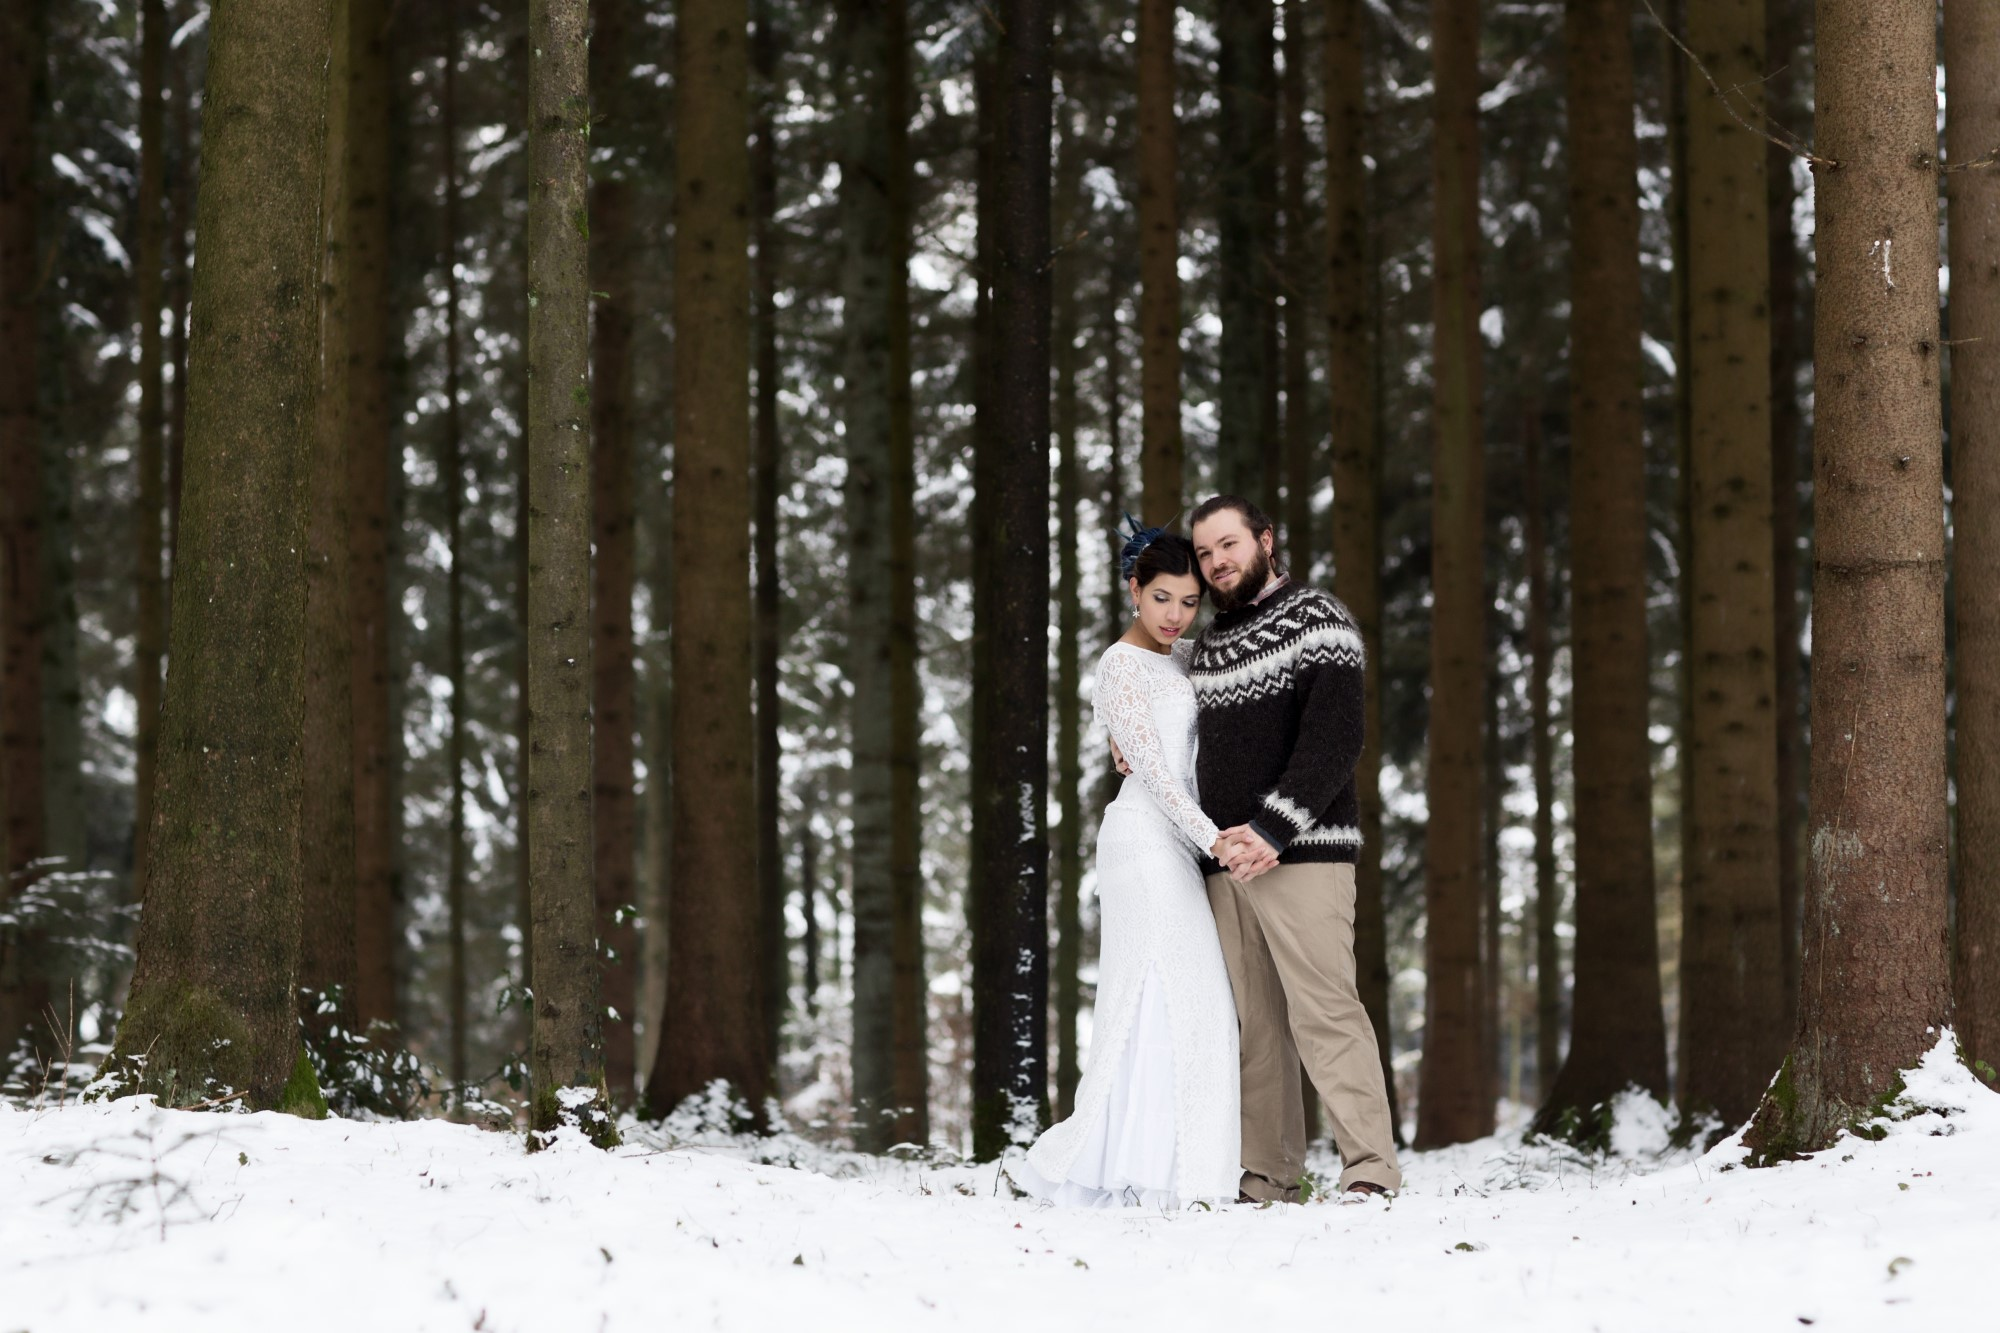 Winter Paarfotoshooting im Wald